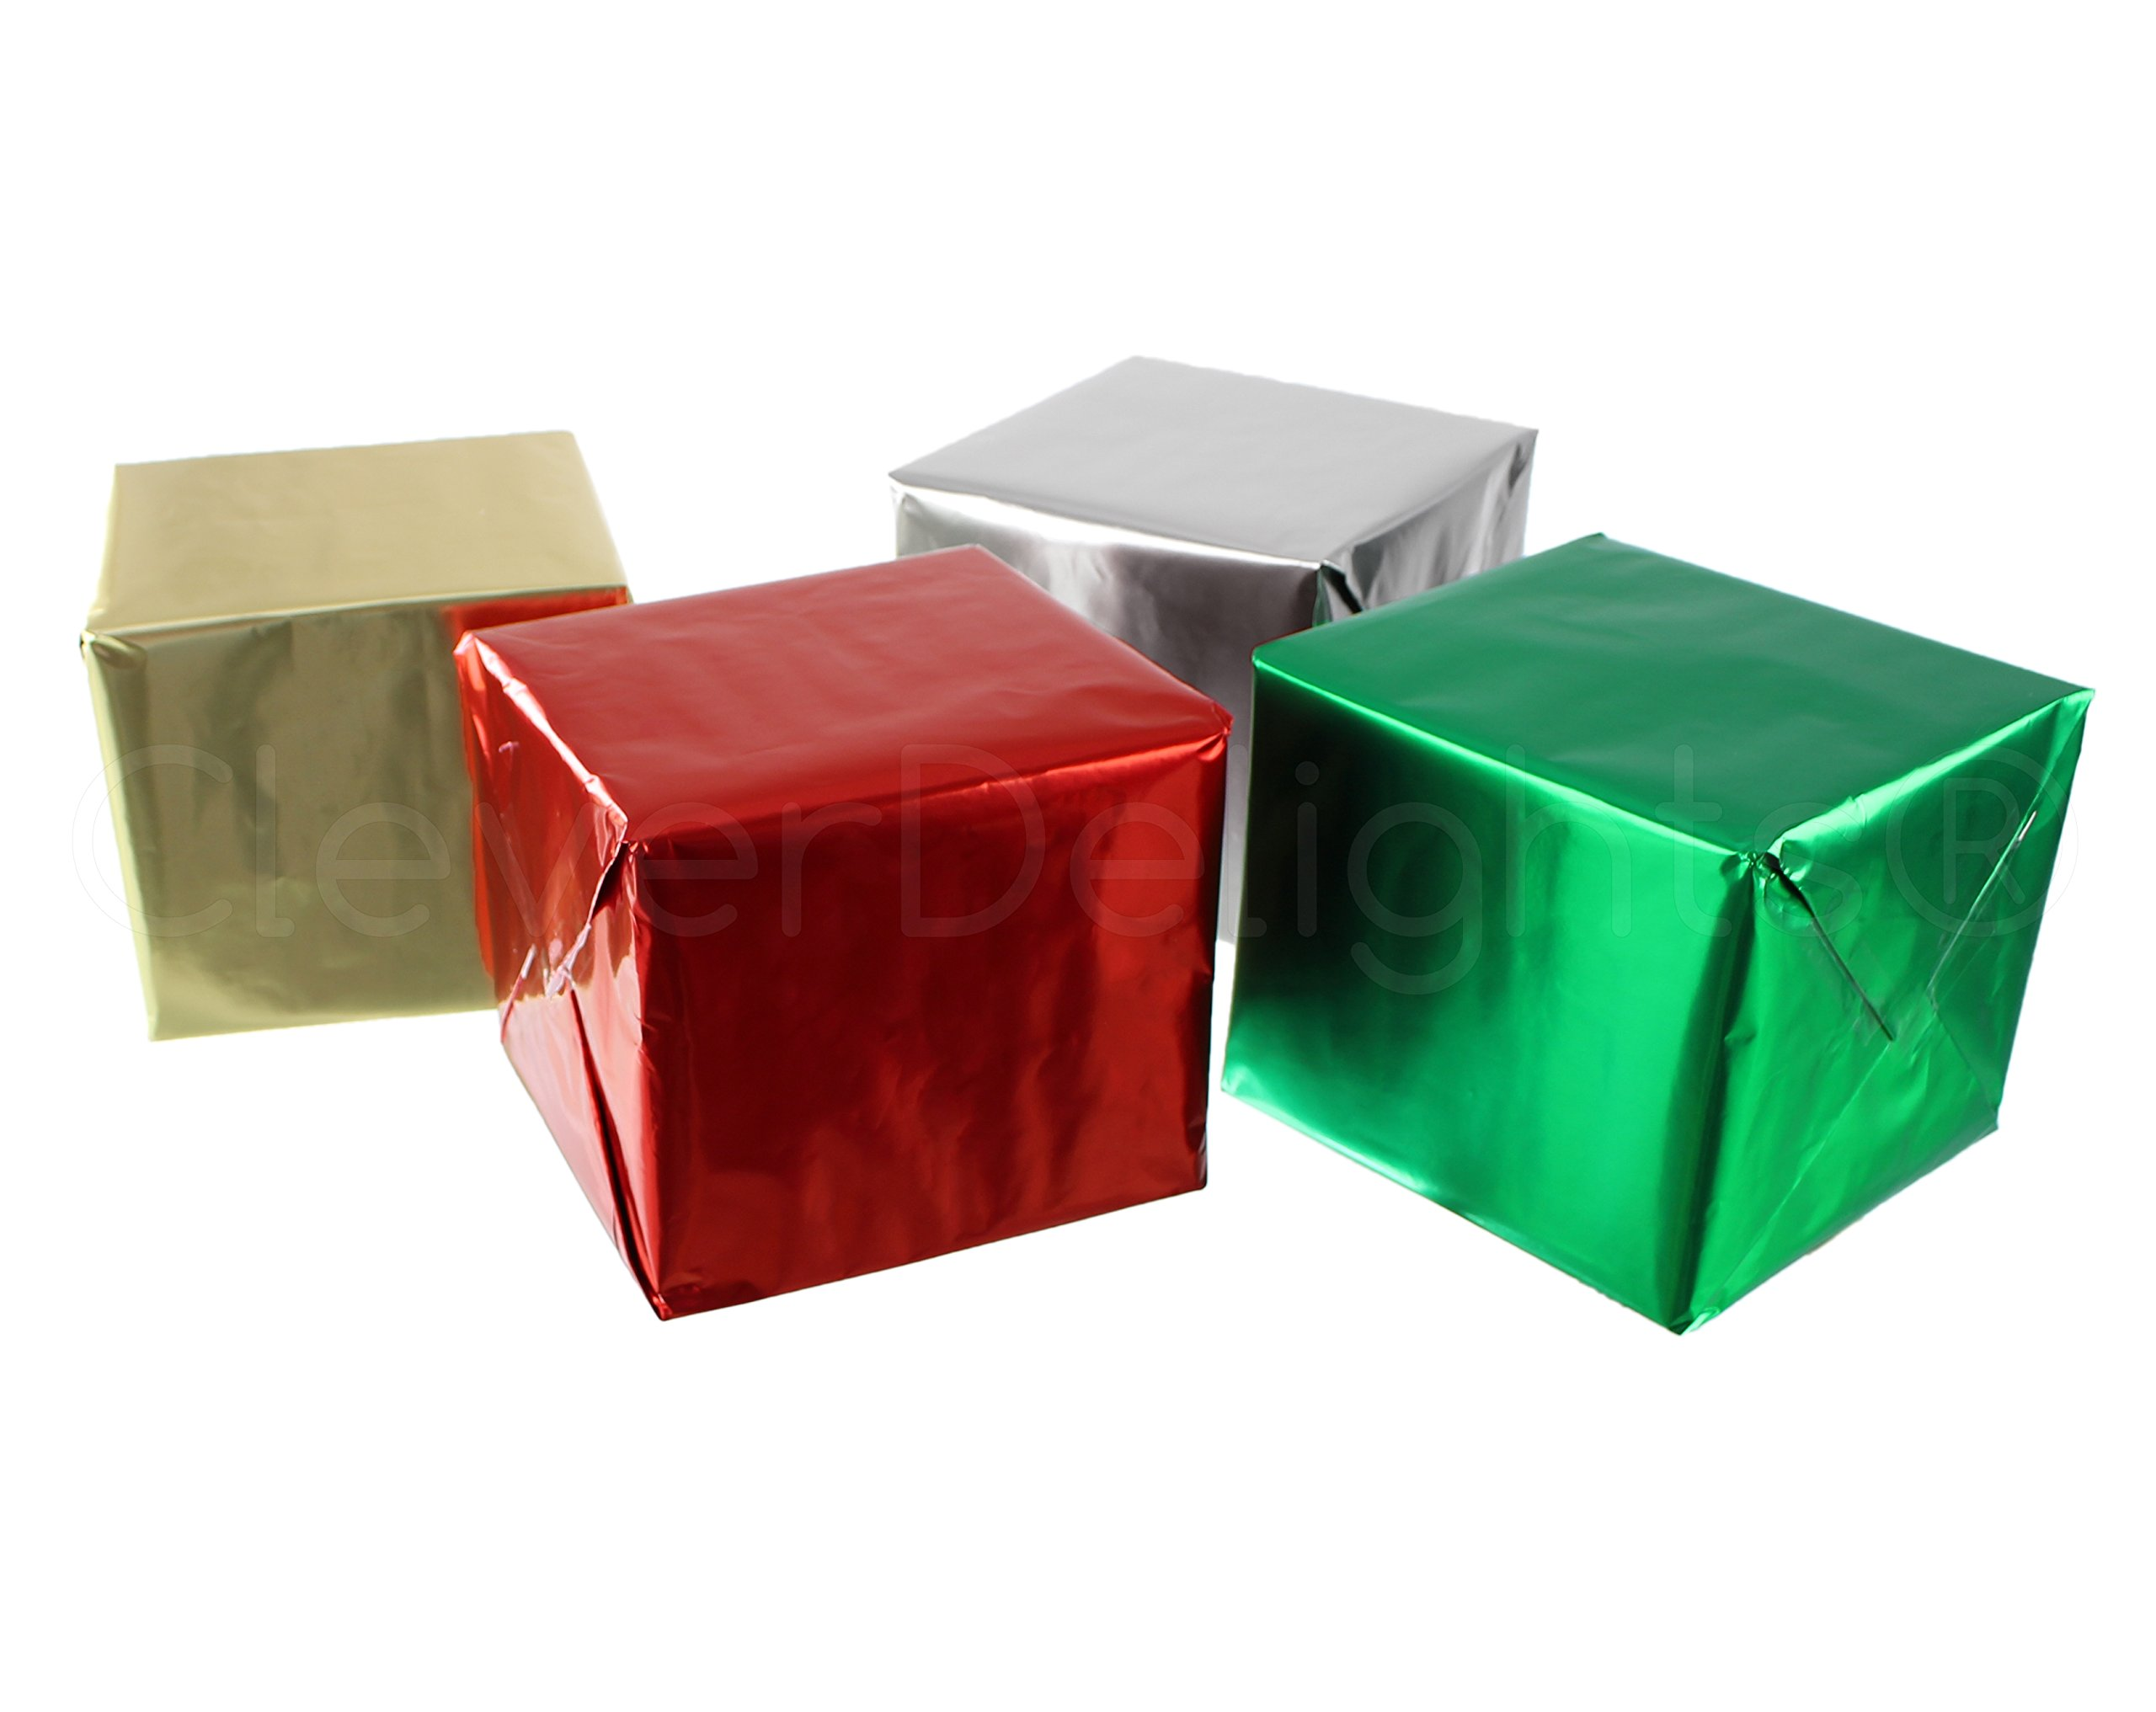 CleverDelights Metallic Wrapping Paper - 4 Rolls - Silver Gold Green Red - 30'' x 300'' Jumbo Rolls - 250 Sq Ft Total